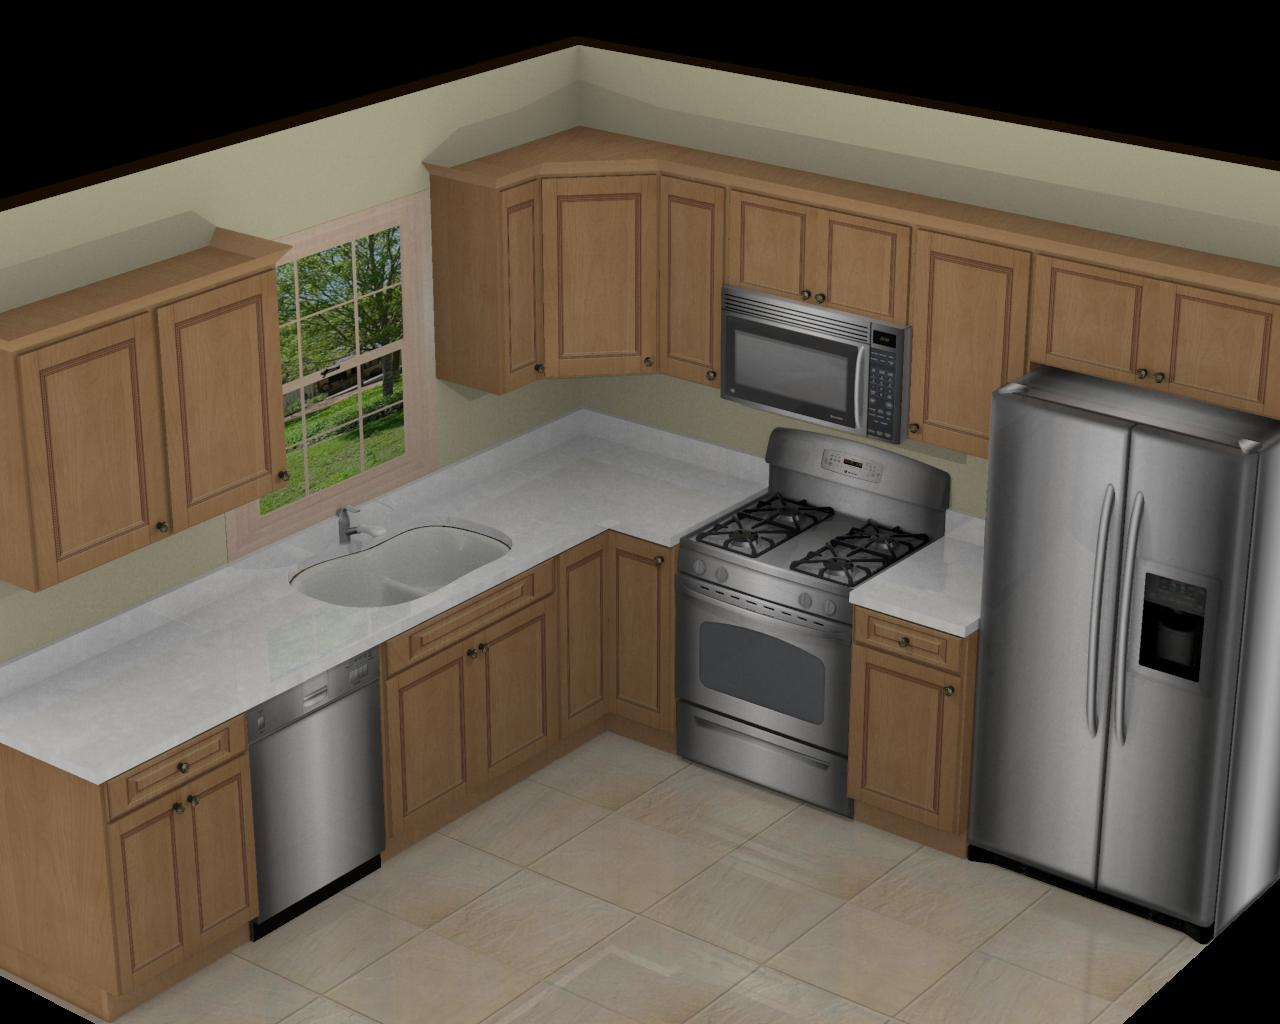 Foundation dezin decor 3d kitchen model design for Kitchen models pictures